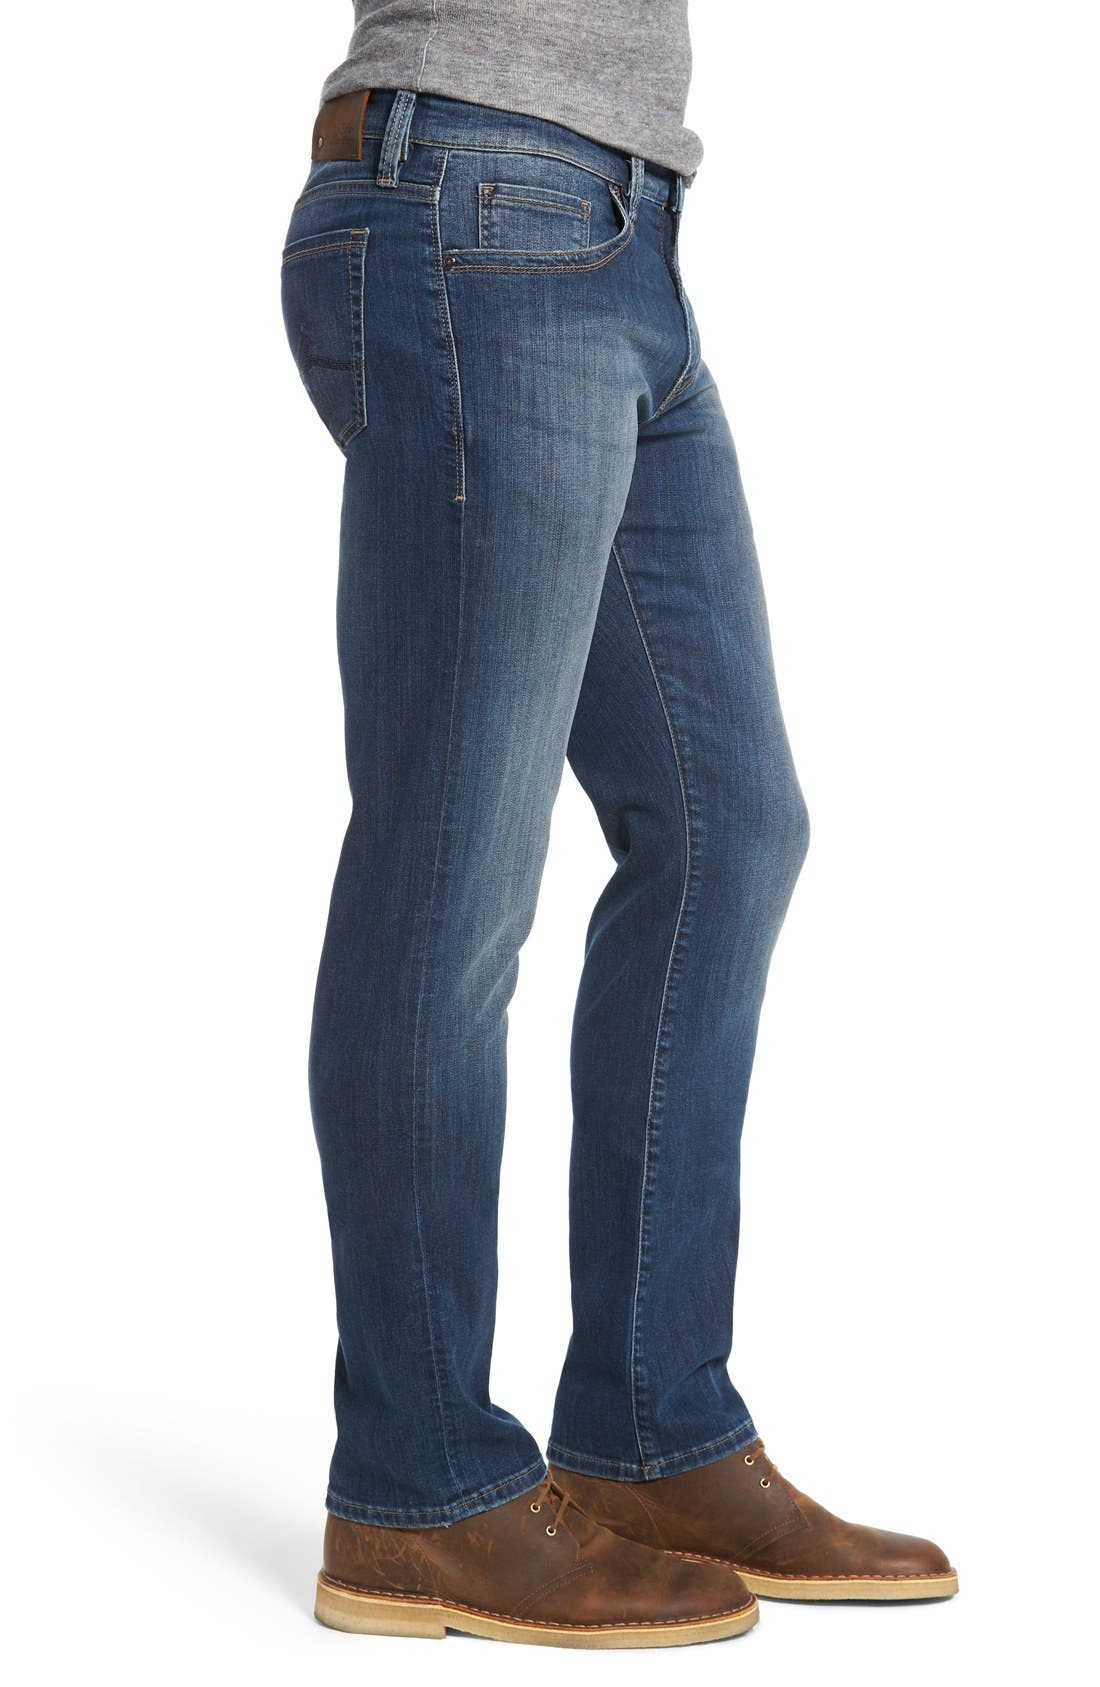 34 HERITAGE,                             Courage Straight Leg Jeans,                             Alternate thumbnail 5, color,                             COURAGE MID VINTAGE